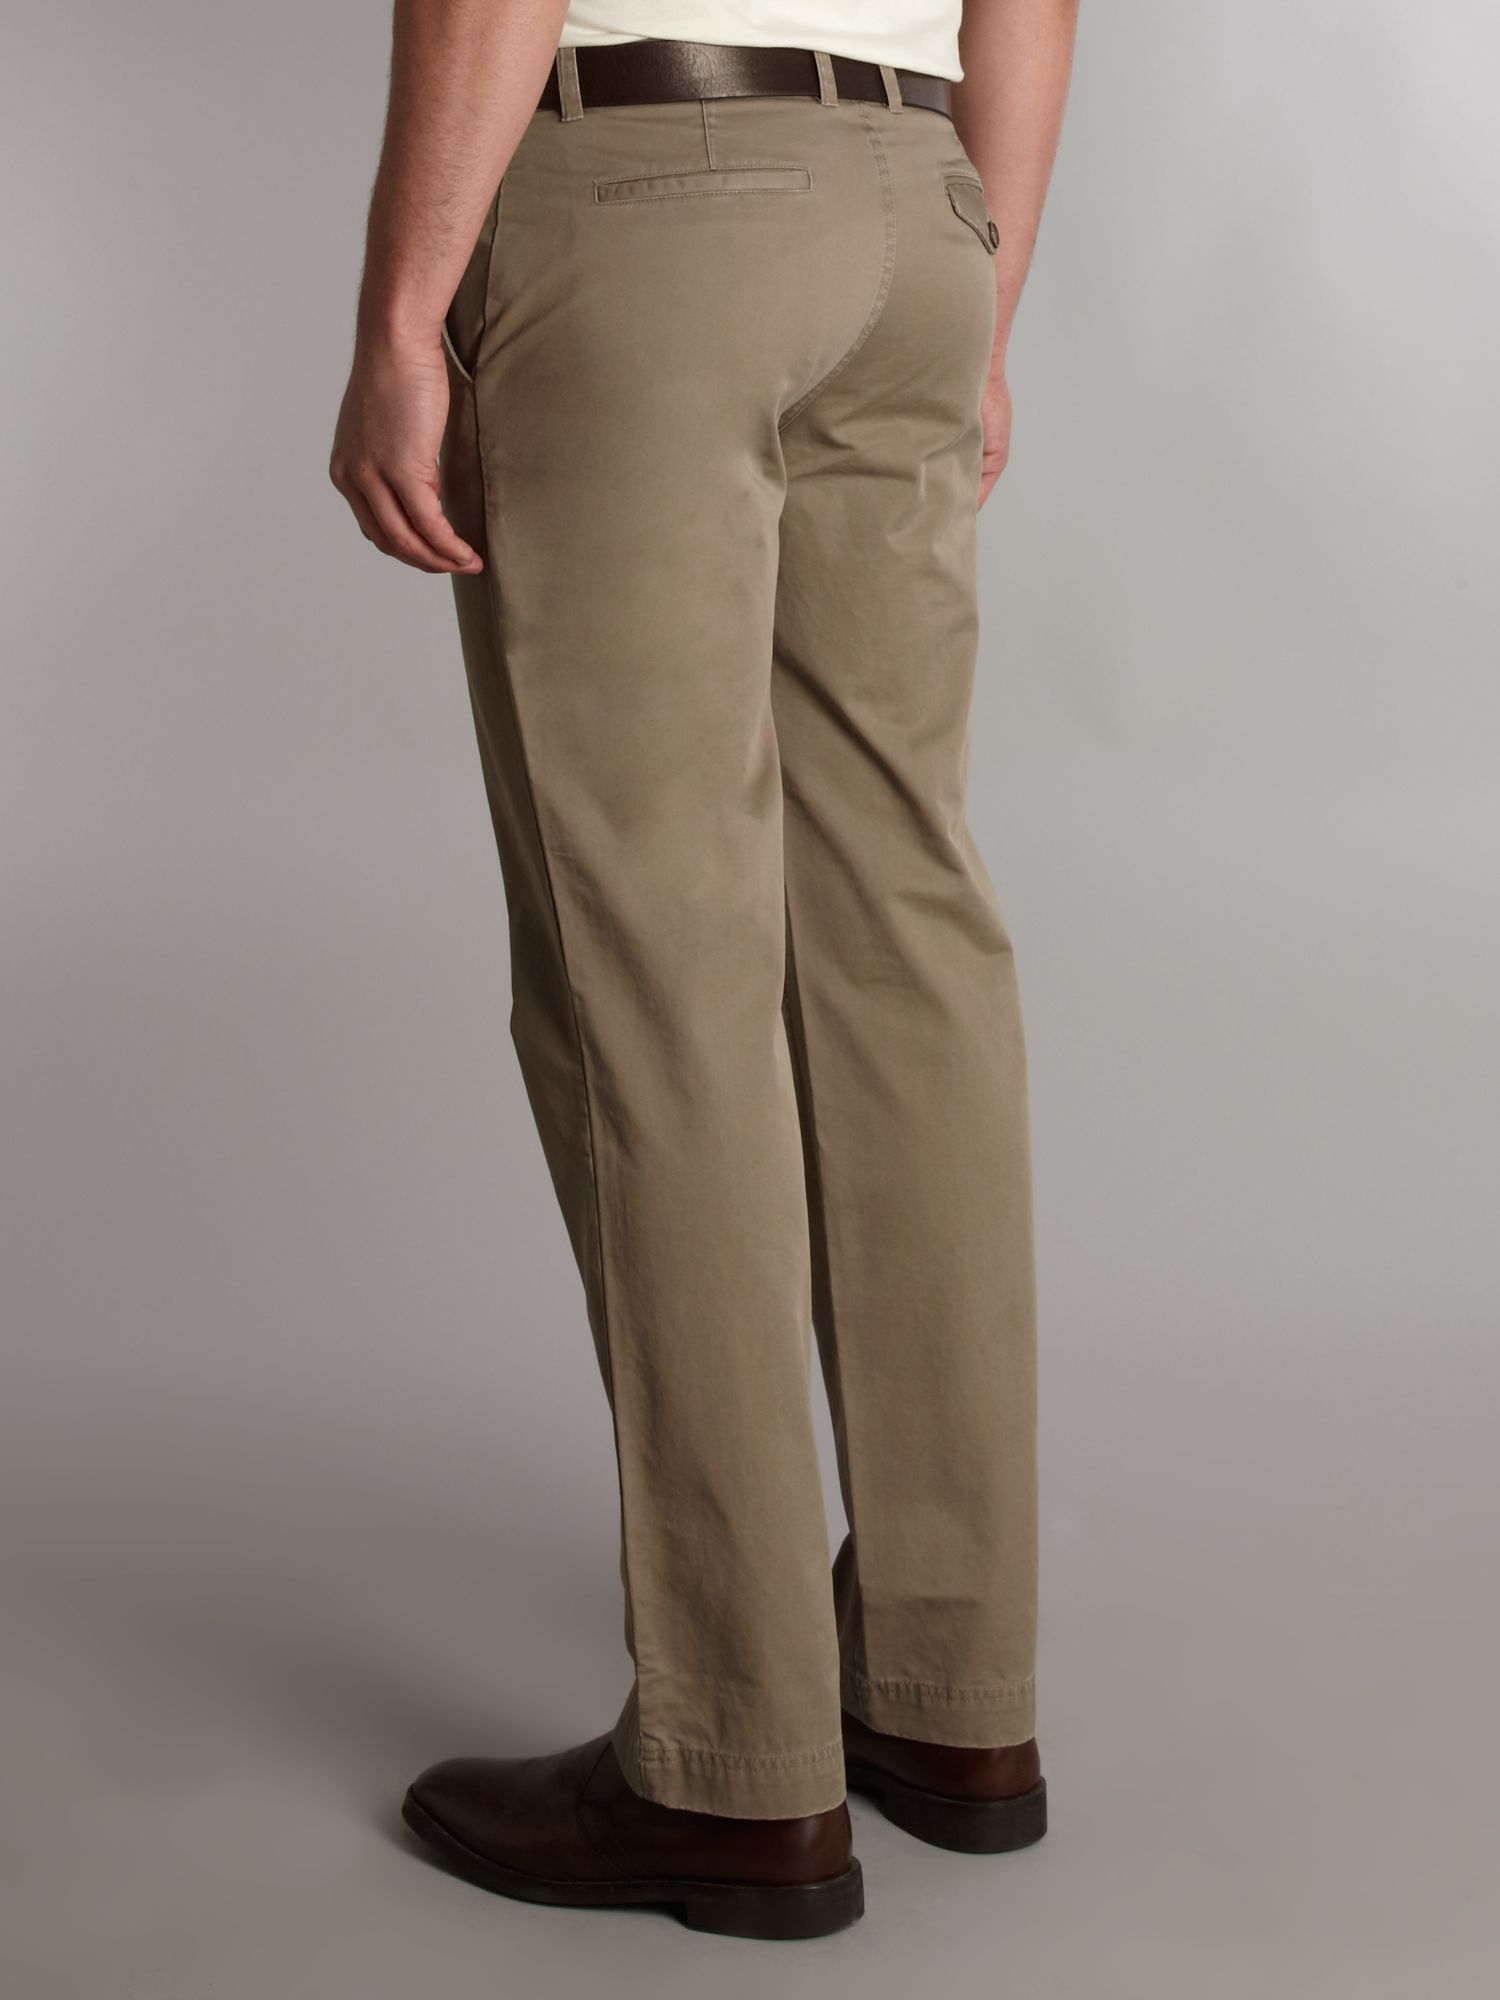 Fred Perry Slim Chino Trouser in Brown for Men